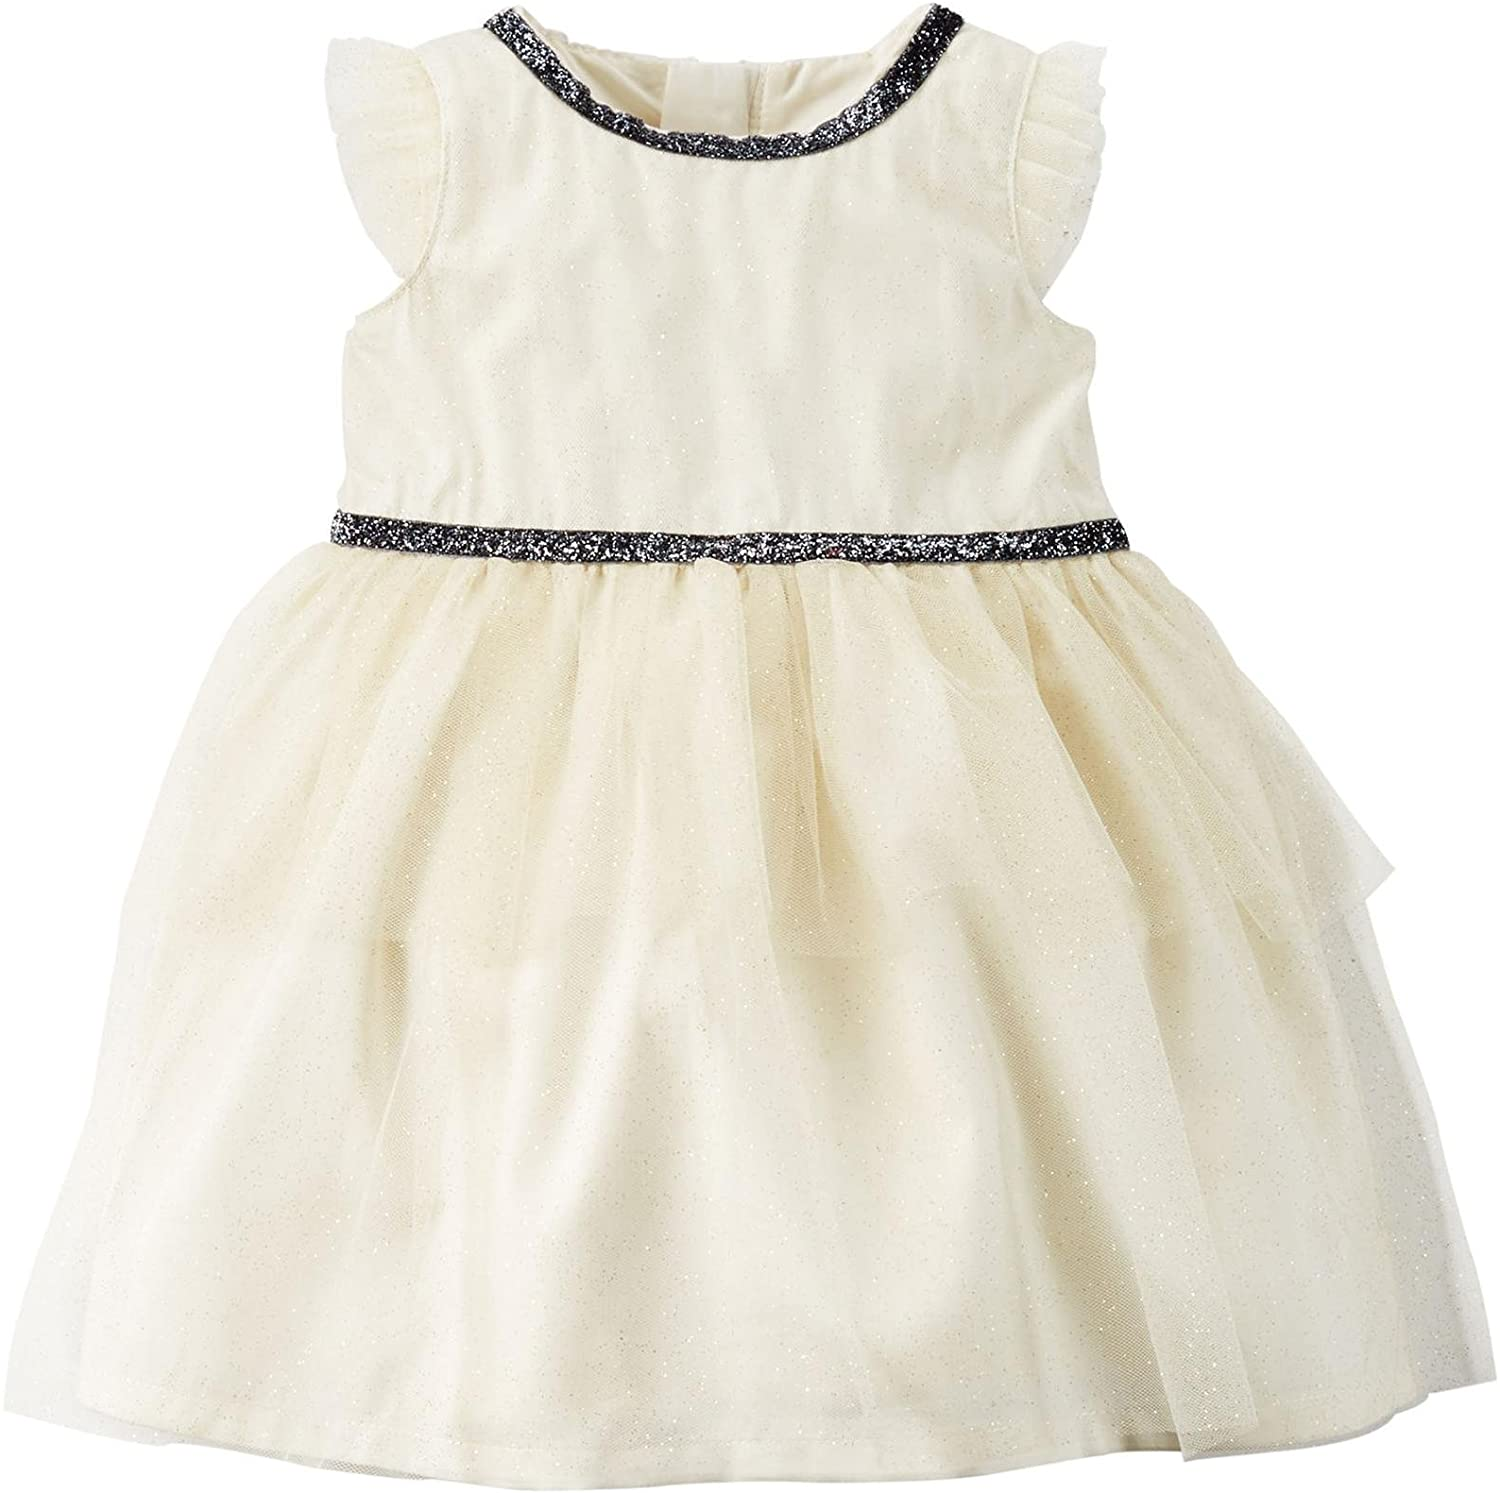 Carter's Baby Girls' Tiered Dress (Baby) - White - 24 Months